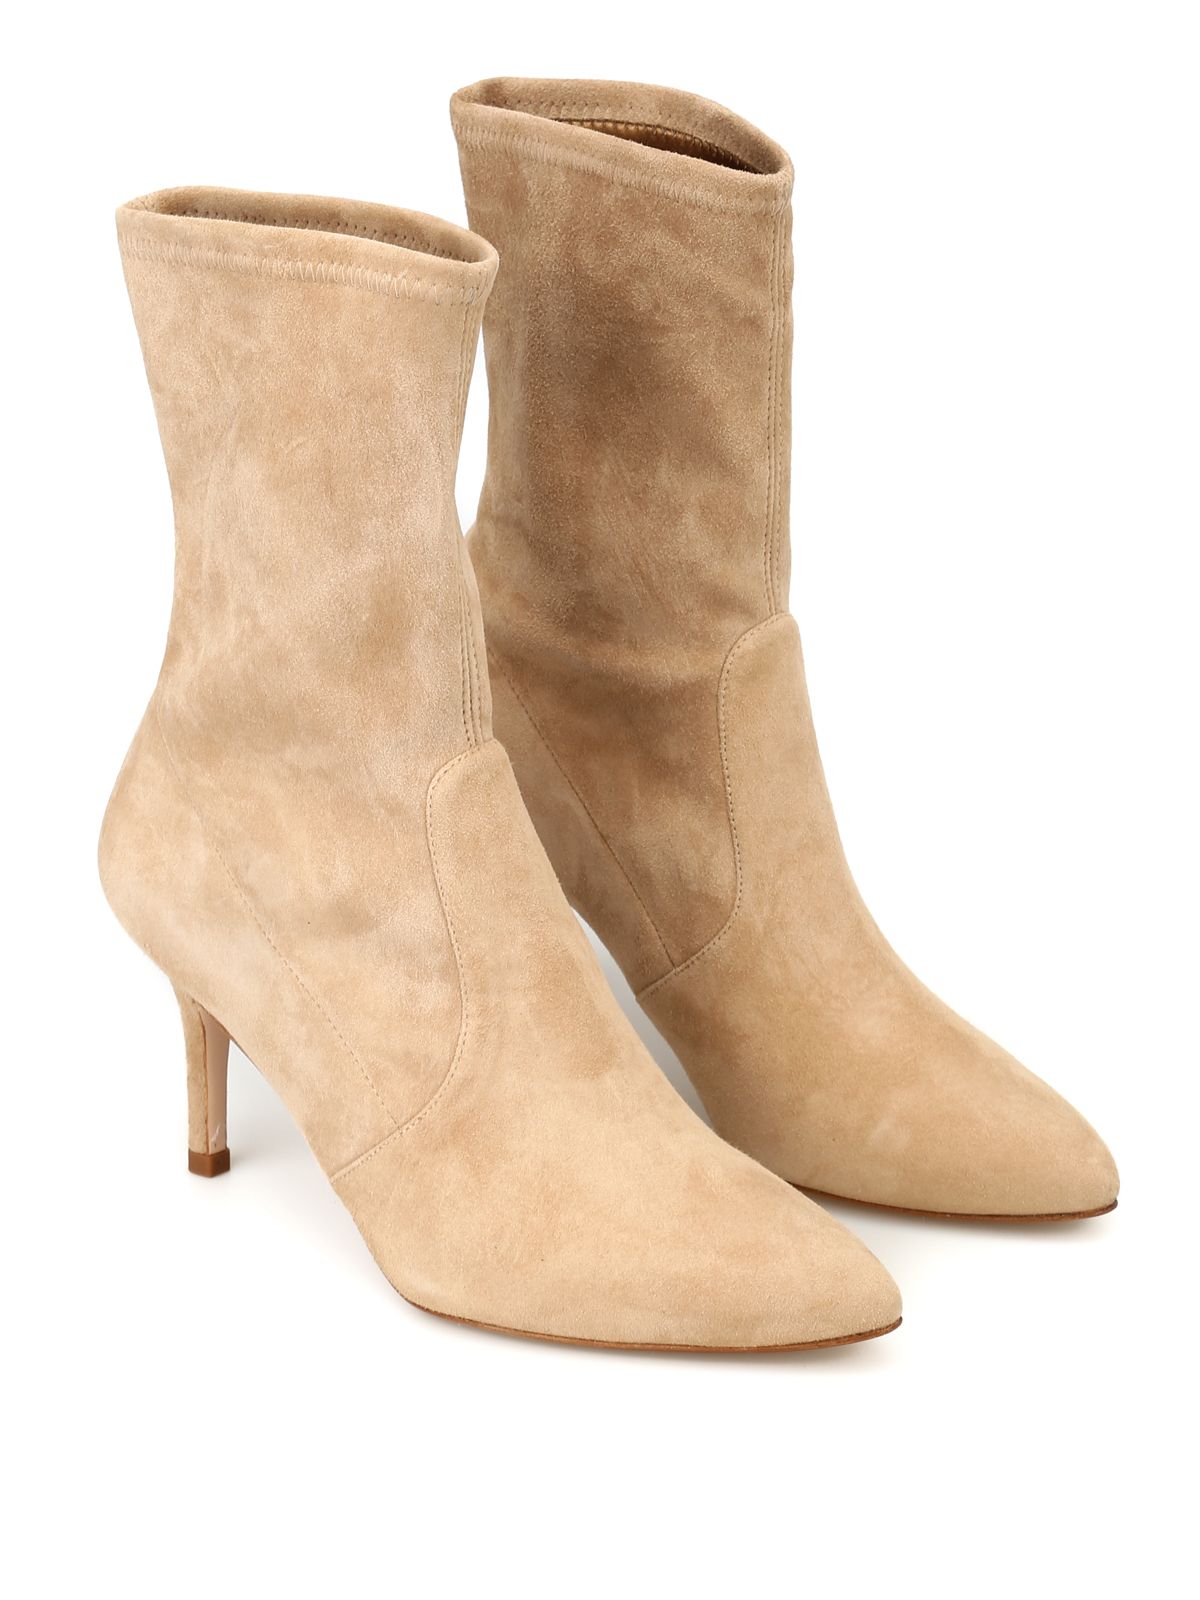 f50f83ce1b2 Stuart Weitzman - Cling suede booties - ankle boots - XL15812 ...